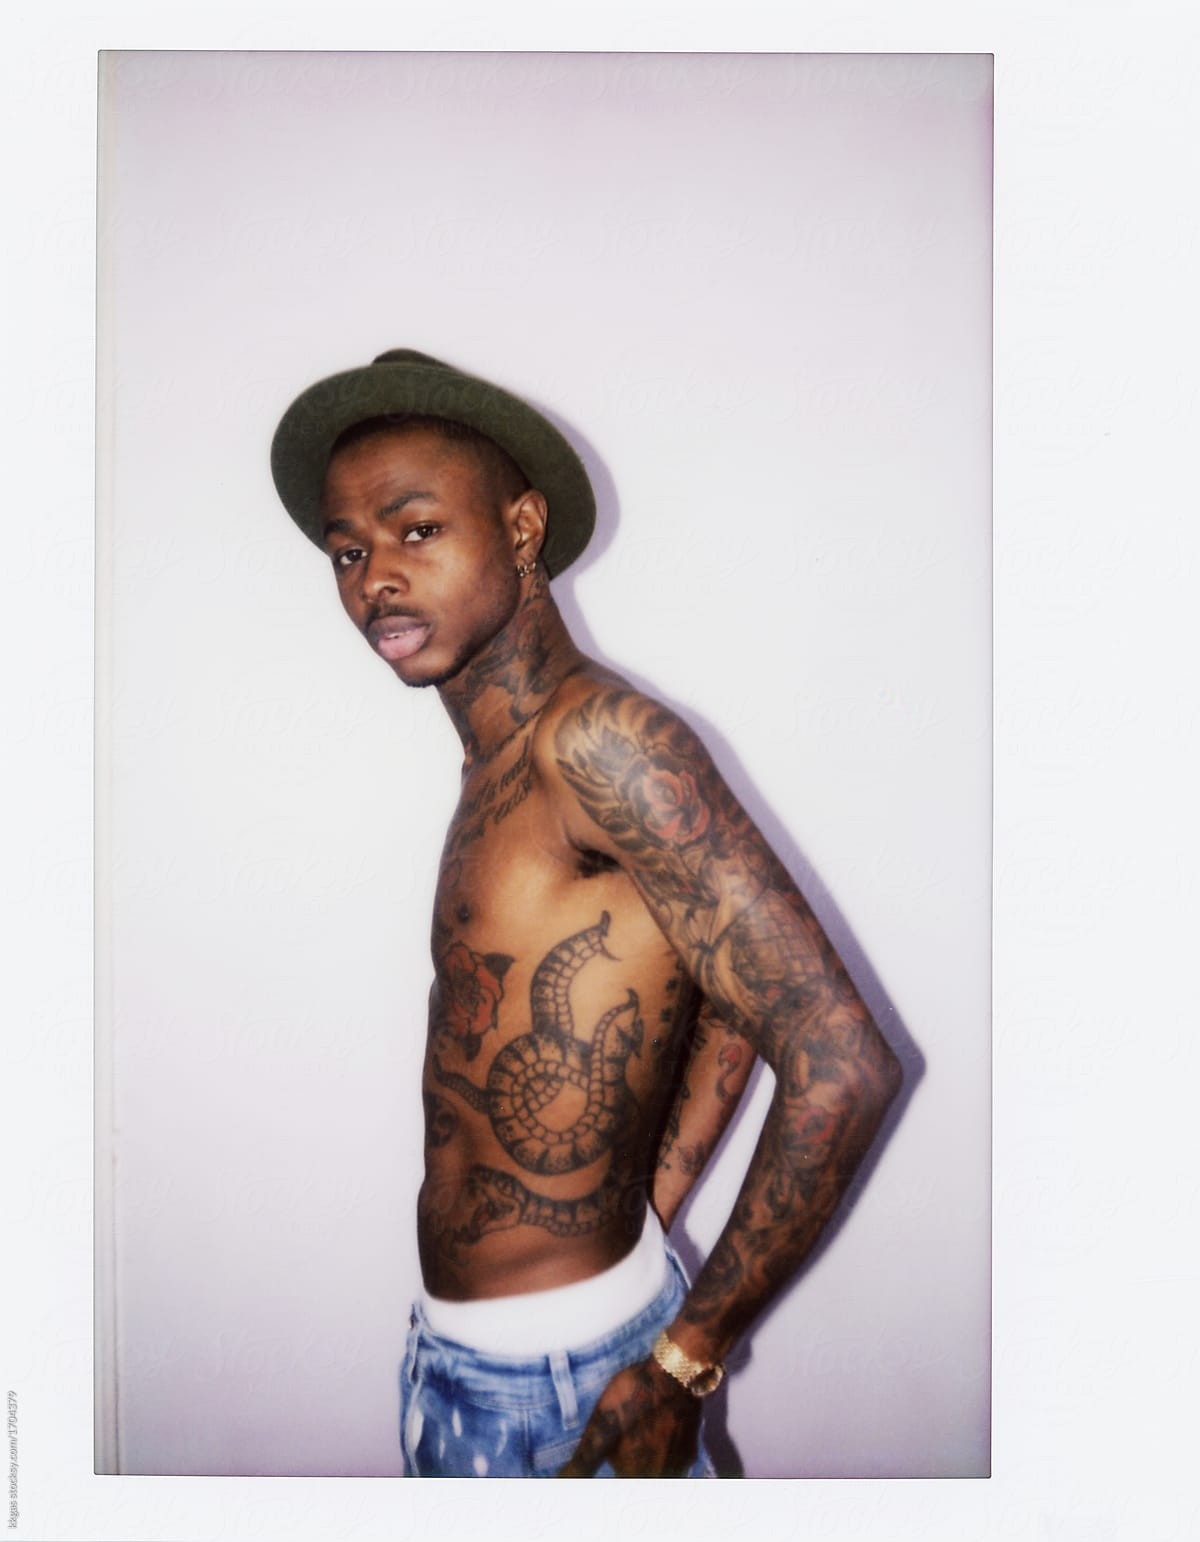 a4a4ff2f53c65 Instant print of a cool tattooed black guy with Fedora hat. by kkgas for  Stocksy